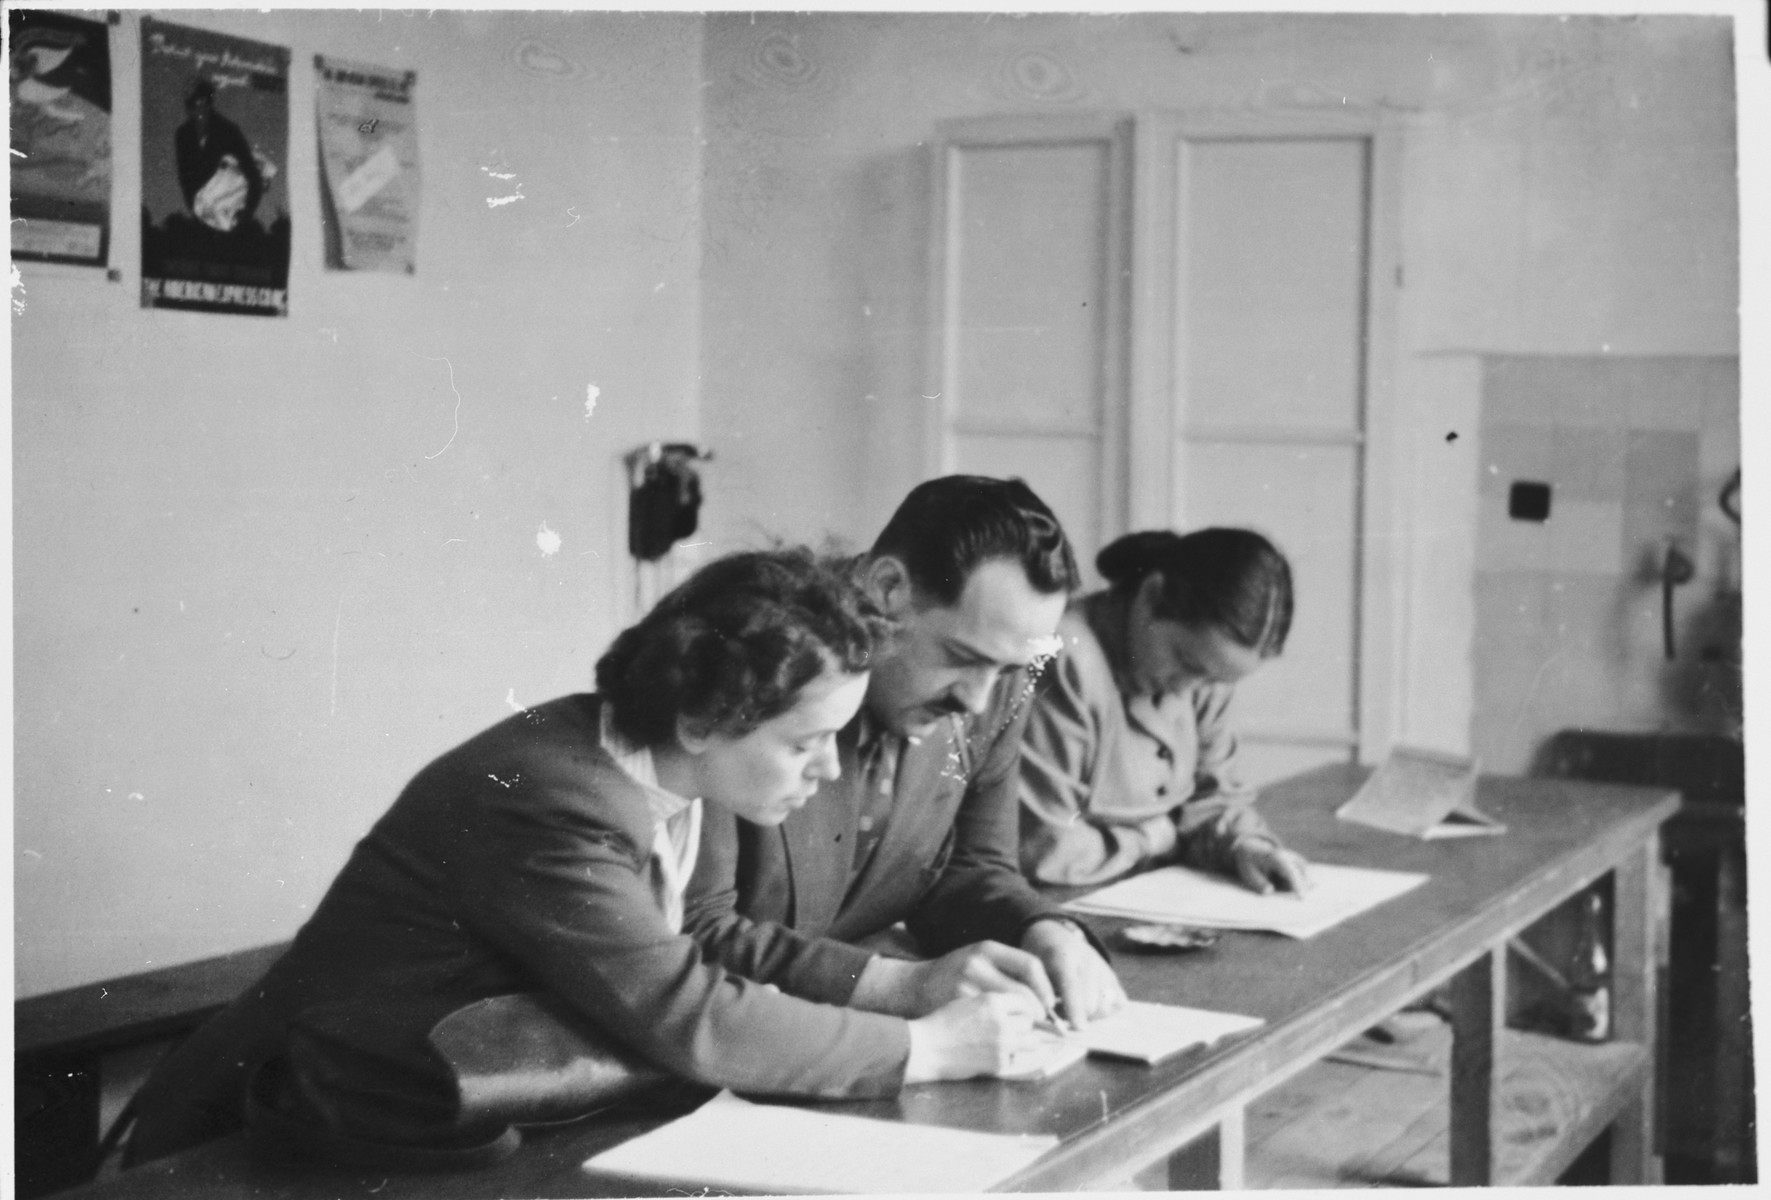 Representatives of the Canadian government who helped facilitate the immigration of displaced persons to Canada prepare to send telegrams.  Pictured from left to right are Margot Baignee, a Catholic who helped trade test prospective immigrants, Lucien St. Cyr, a representative of the Labor Department, and Bella Meiskin, an unofficial member of the delegation who worked for the Jewish Labor Committee.